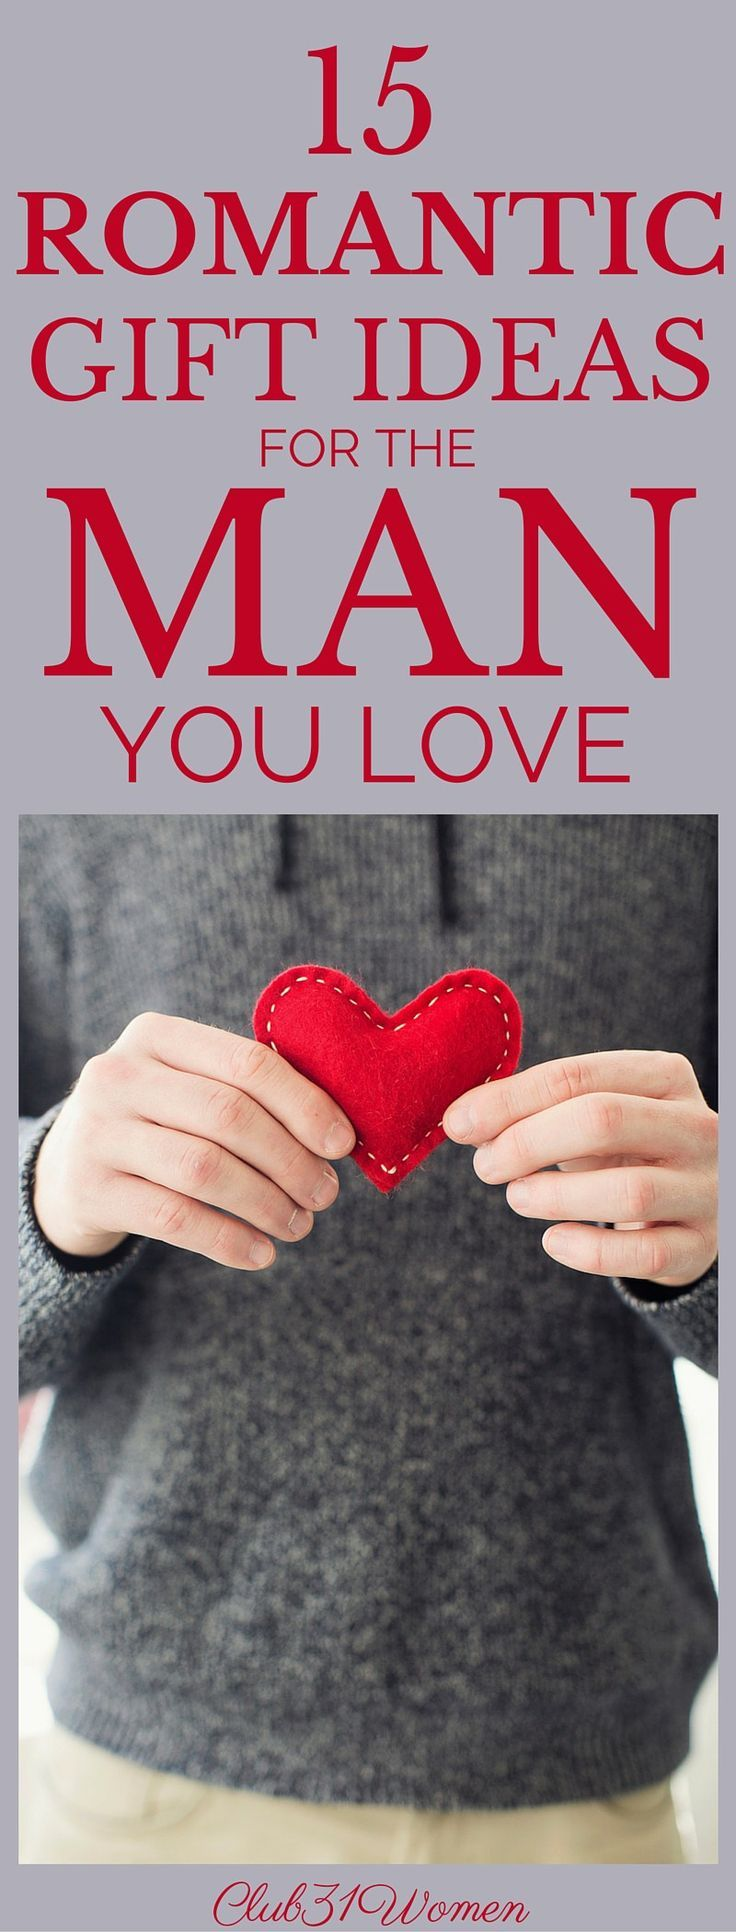 Looking for the perfect gift for the man you love? Something special that he will really enjoy and appreciate? Here are 15 surprisingly romantic (and affordable) gift ideas for him! ~ Club31Women